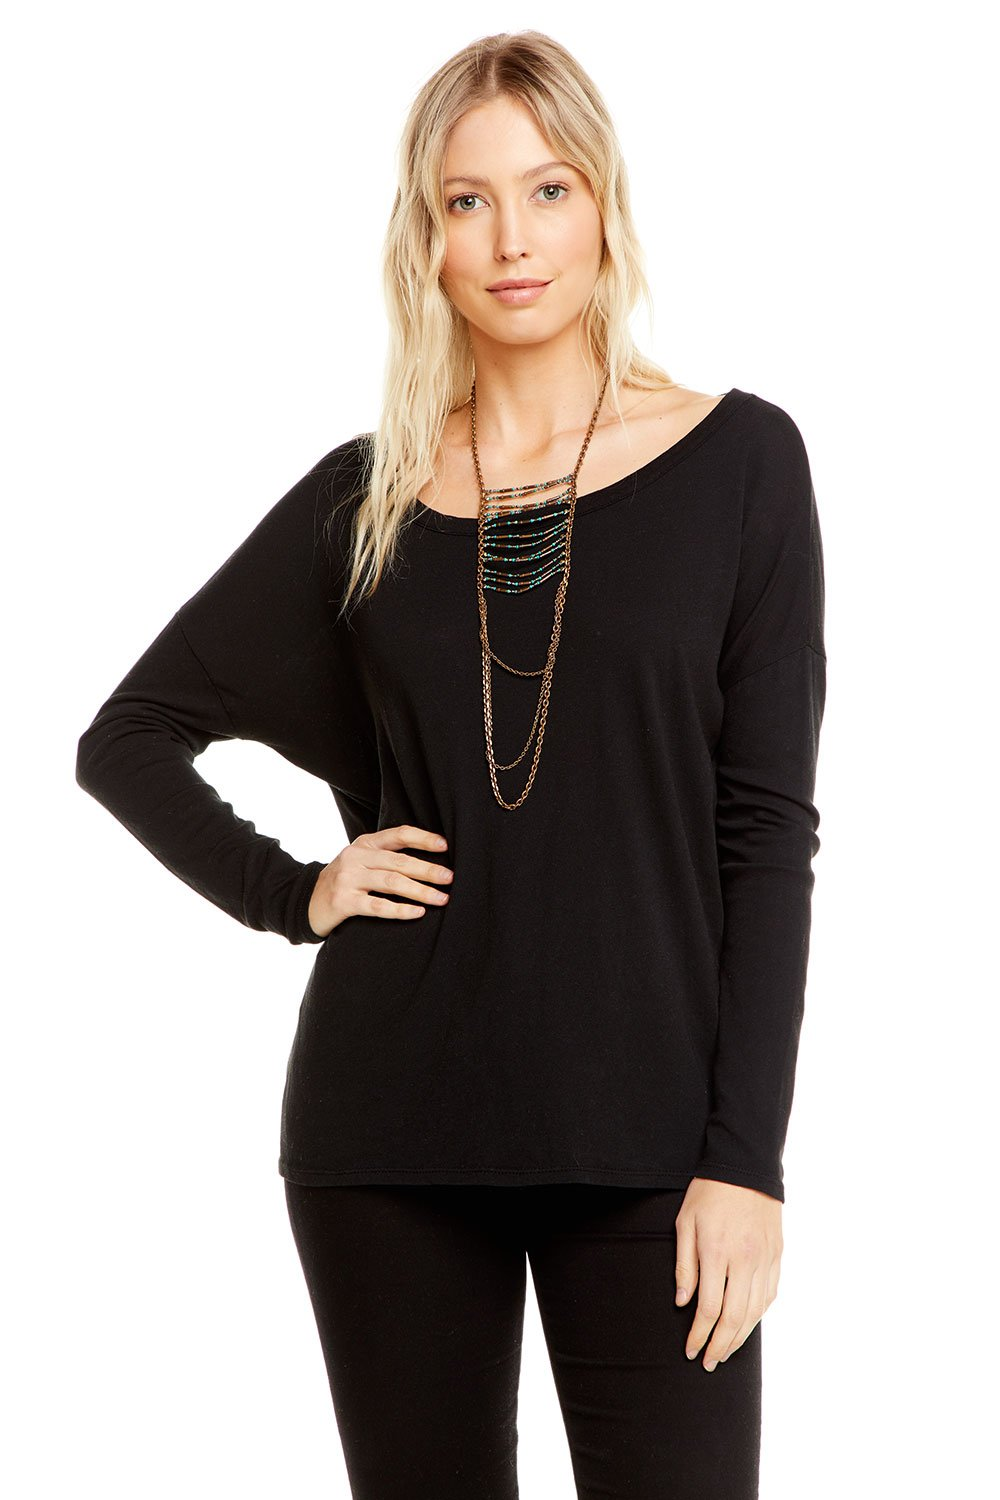 Cotton Basics L/S Crew Neck Seamed Back Dolman Tee